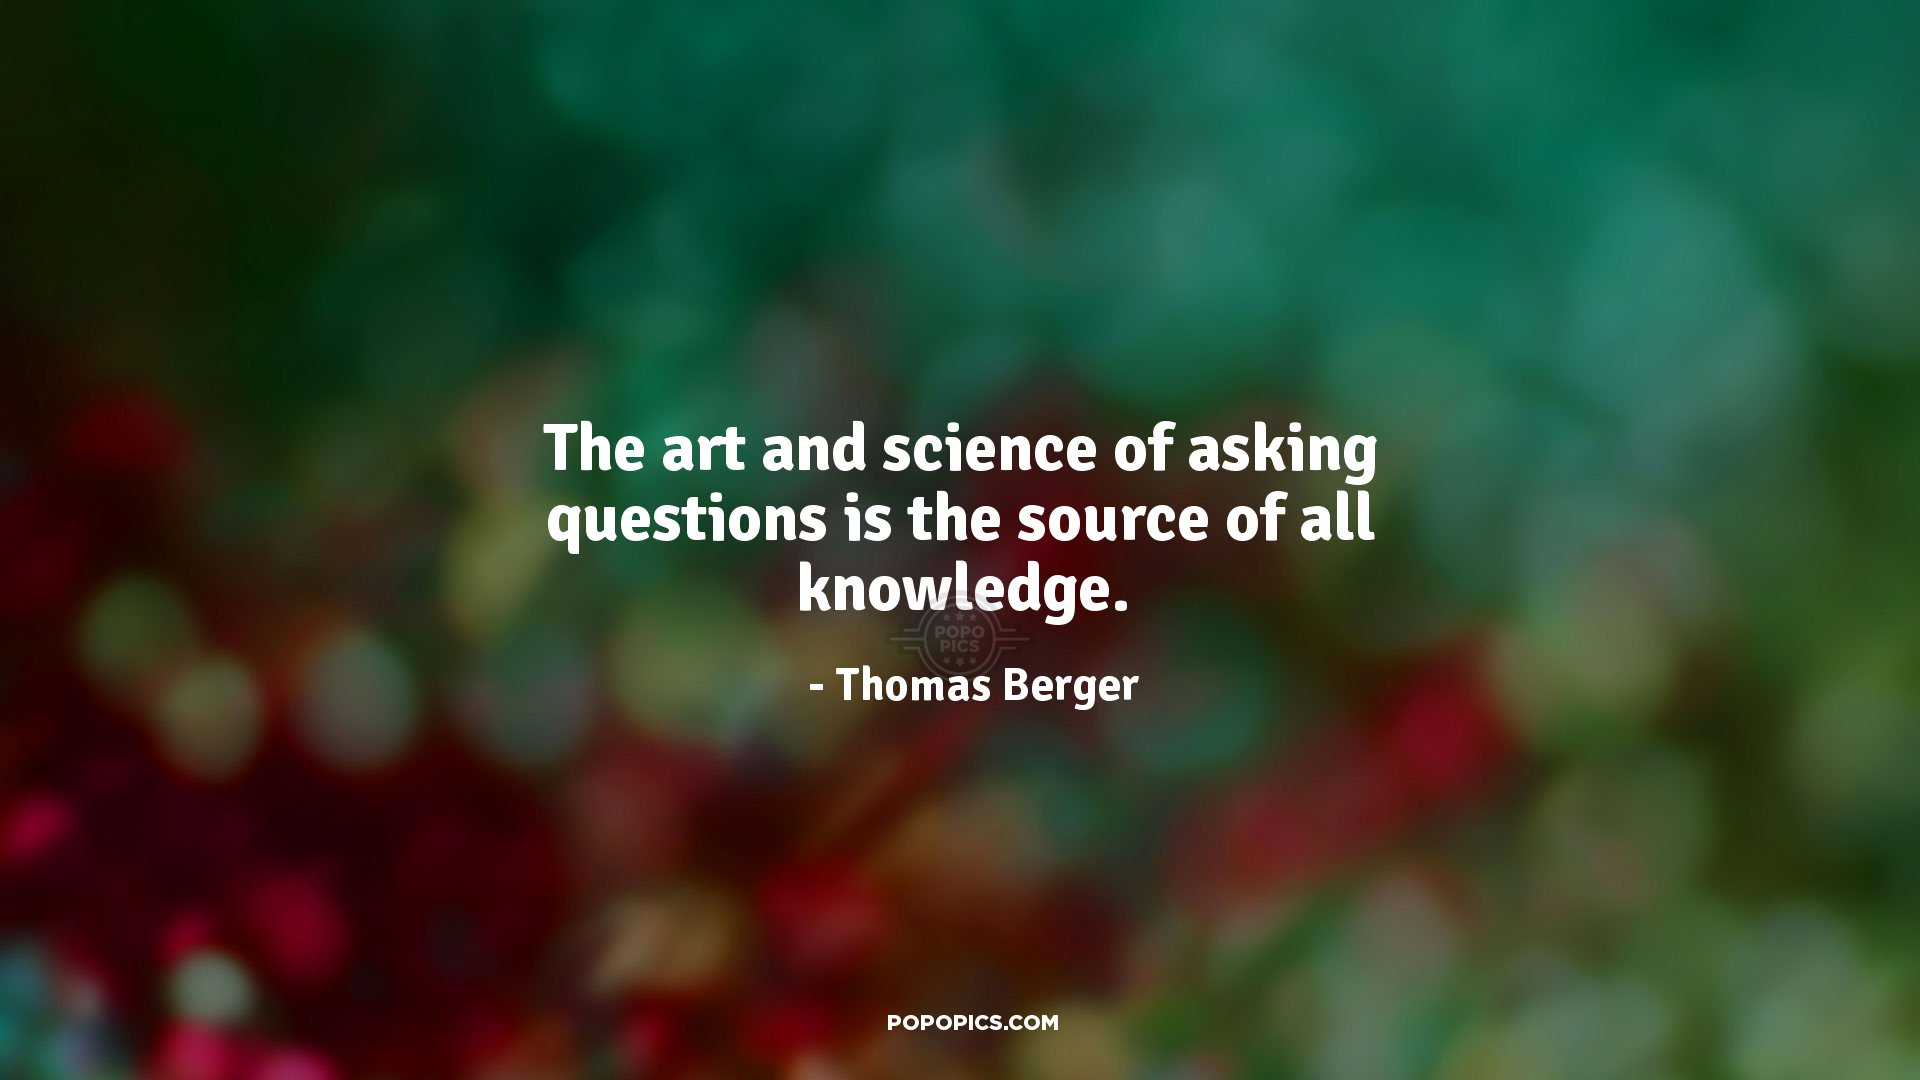 The Art And Science Of Asking Questions Is The...